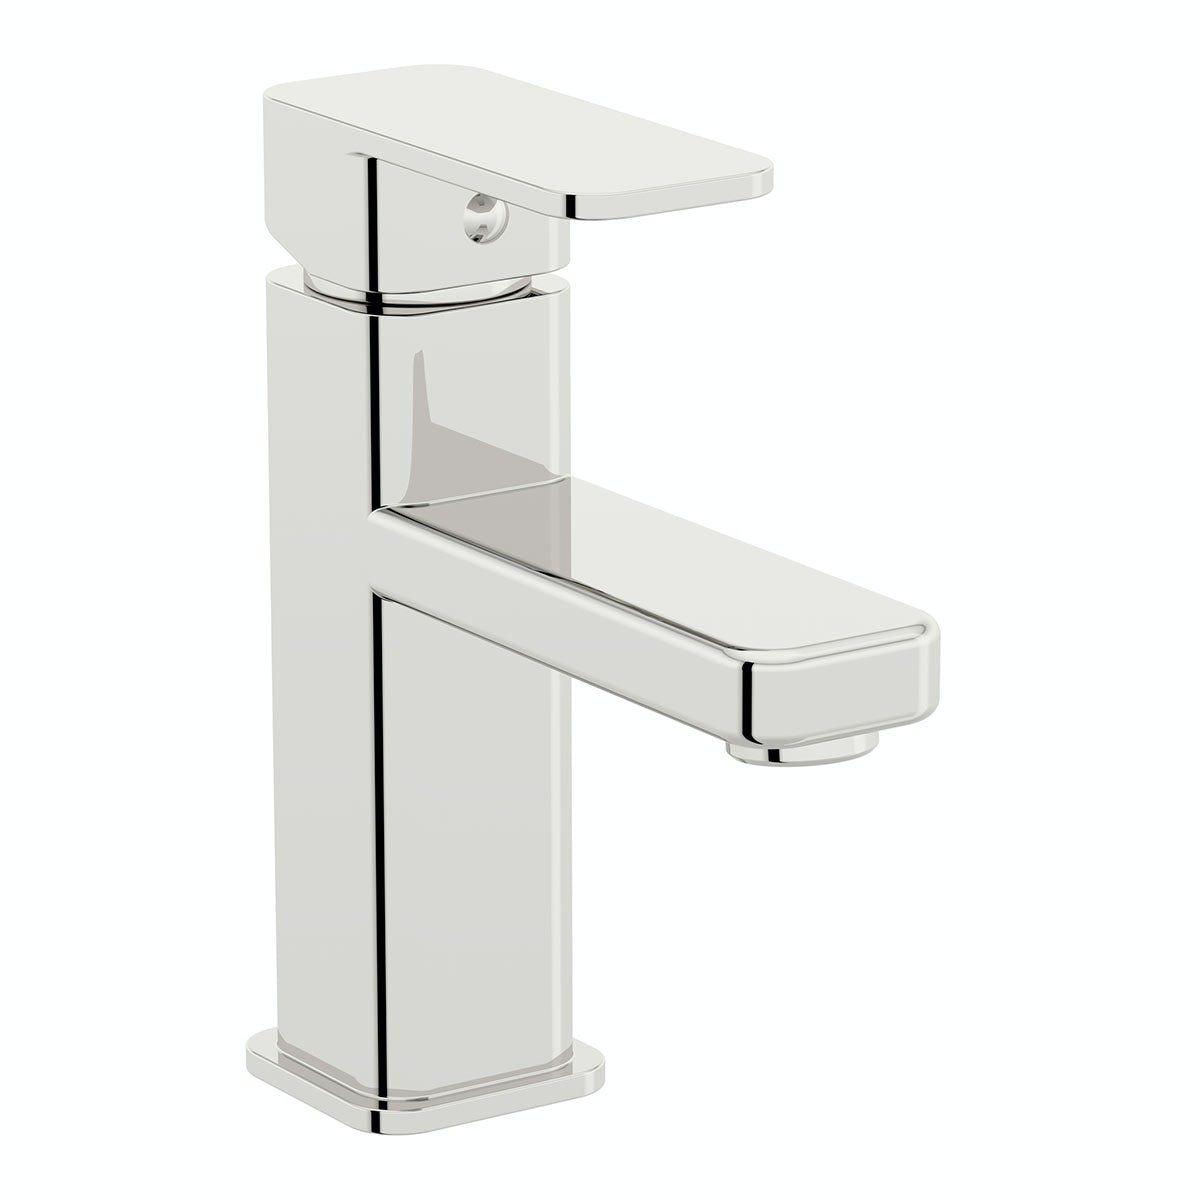 Quartz Basin Mixer